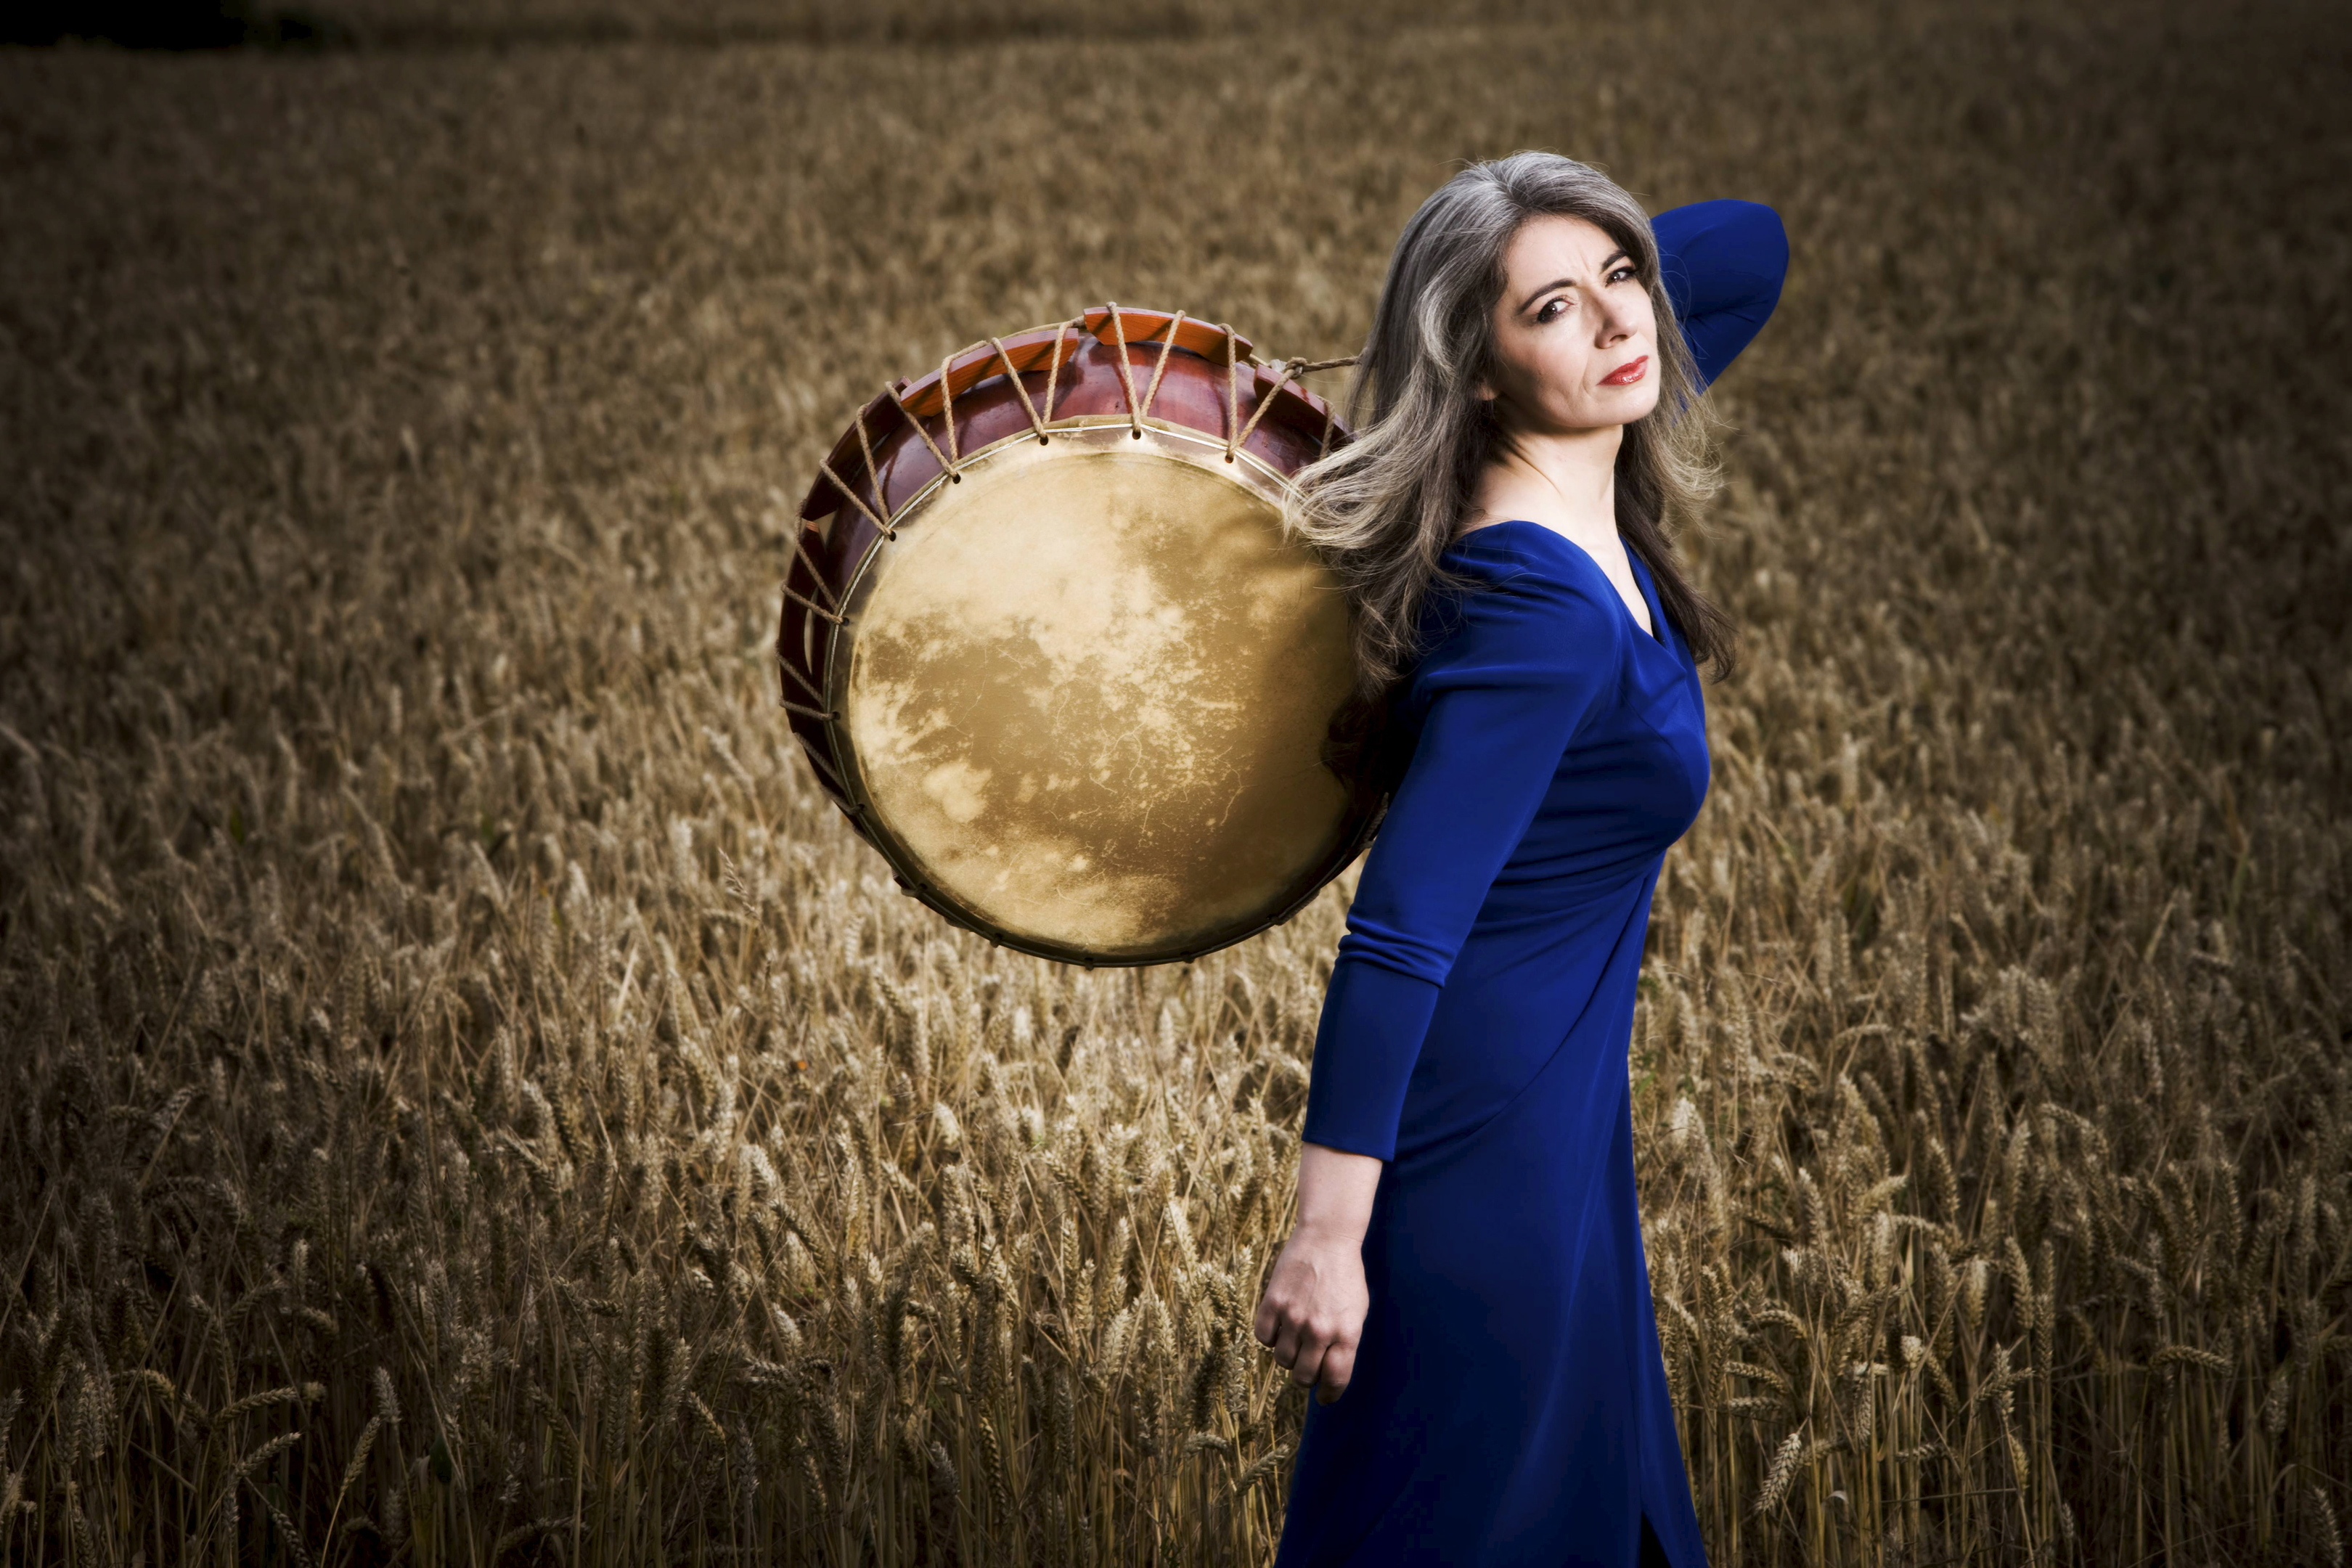 Dame Evelyn Glennie has made the list